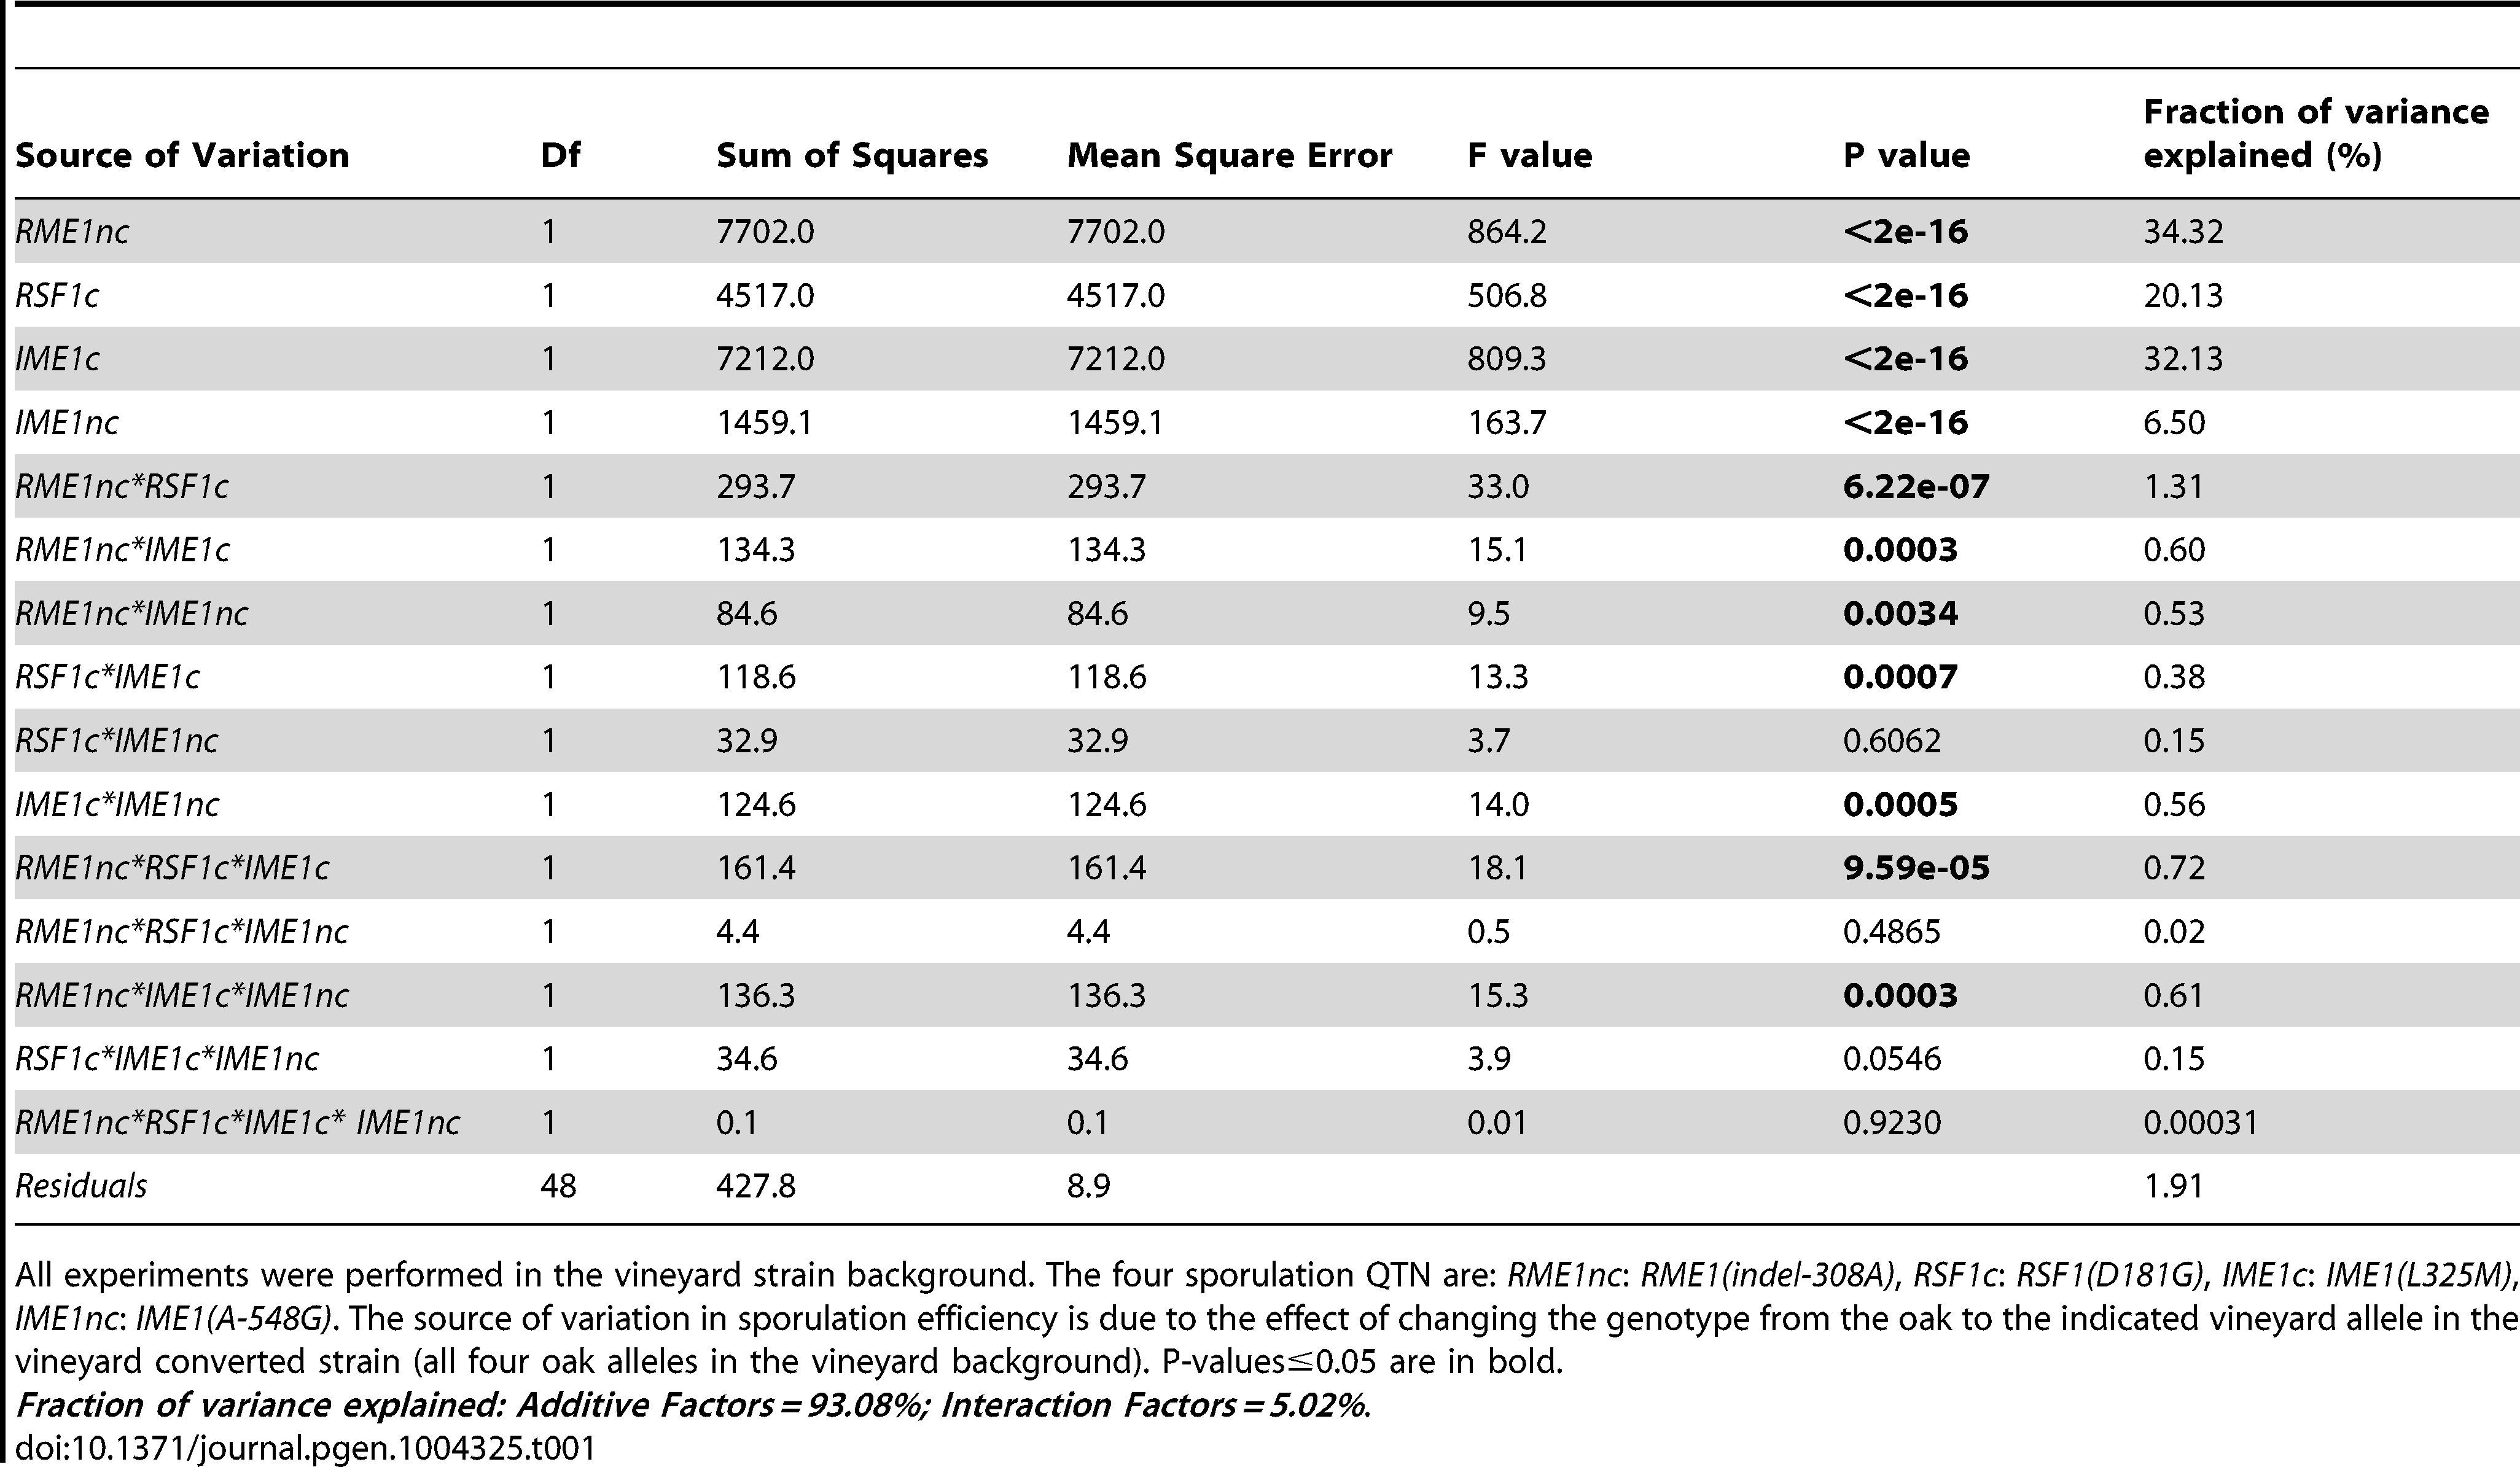 Analysis of variance (ANOVA) table of sporulation efficiencies in allele replacement strains.